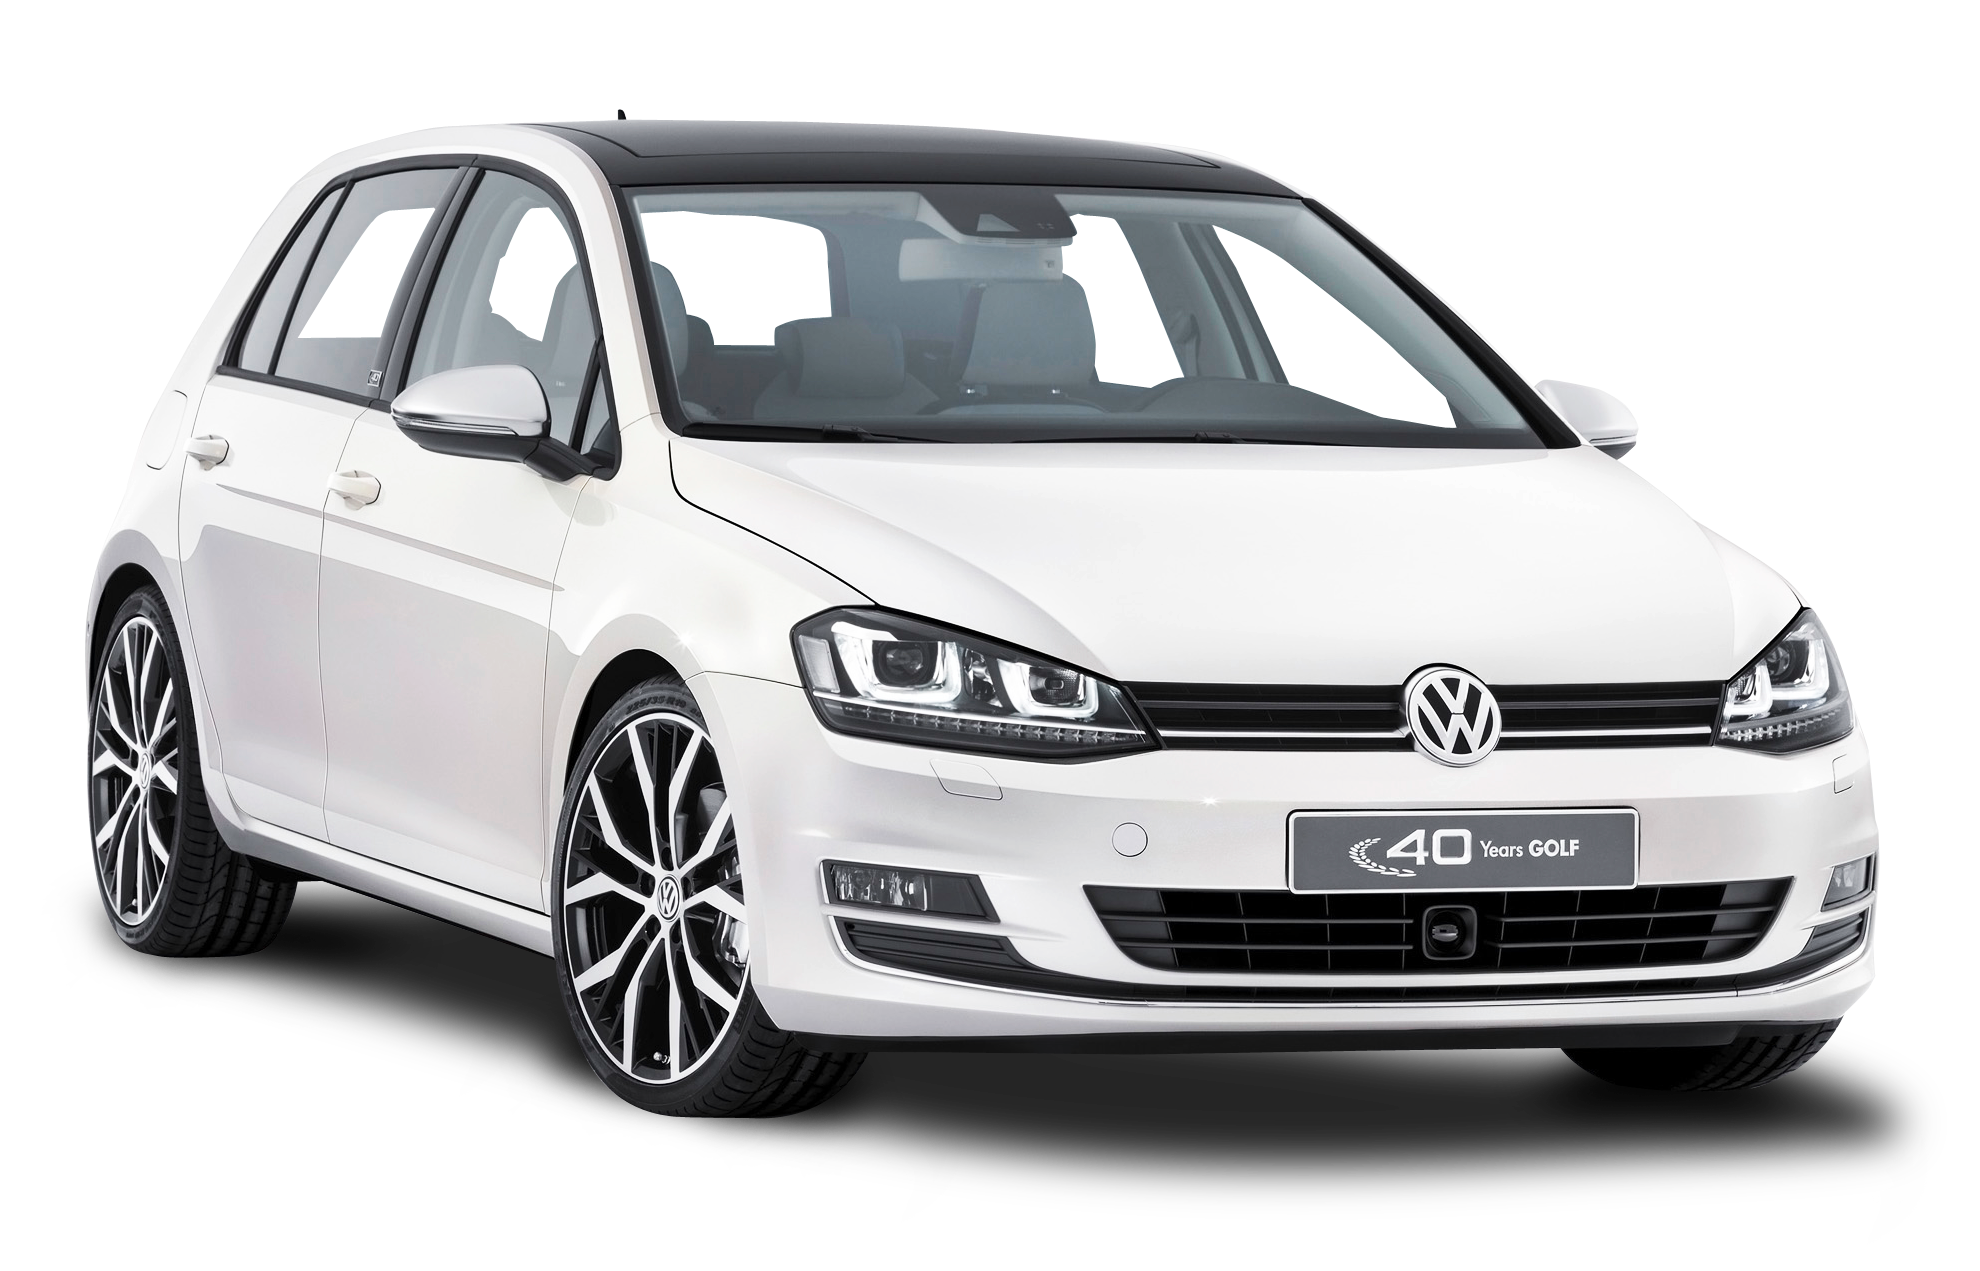 White Volkswagen Golf Car PNG Image.